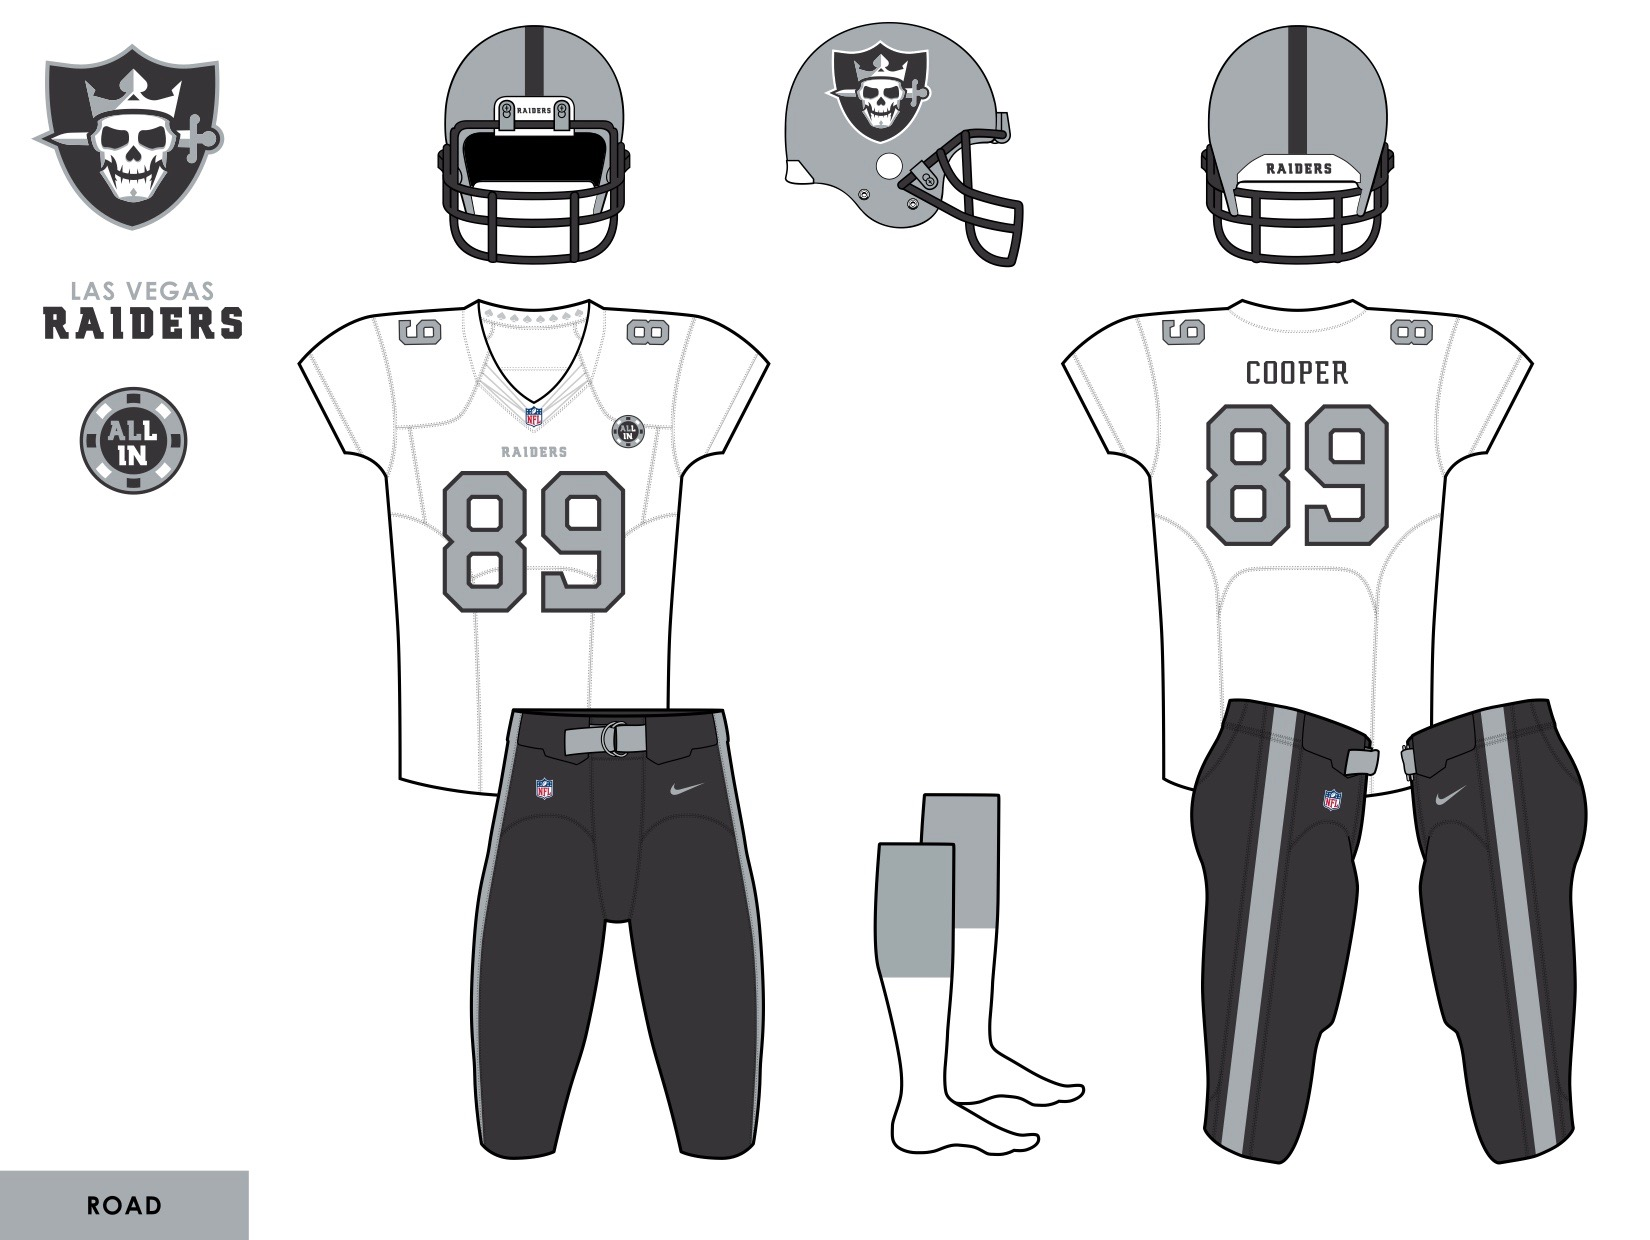 9f1979d7771 Sometimes the best solution is the simplest one. Alex Rocklein added a lot  of punch to the Raiders  road look by simply changing the pants from silver  to ...